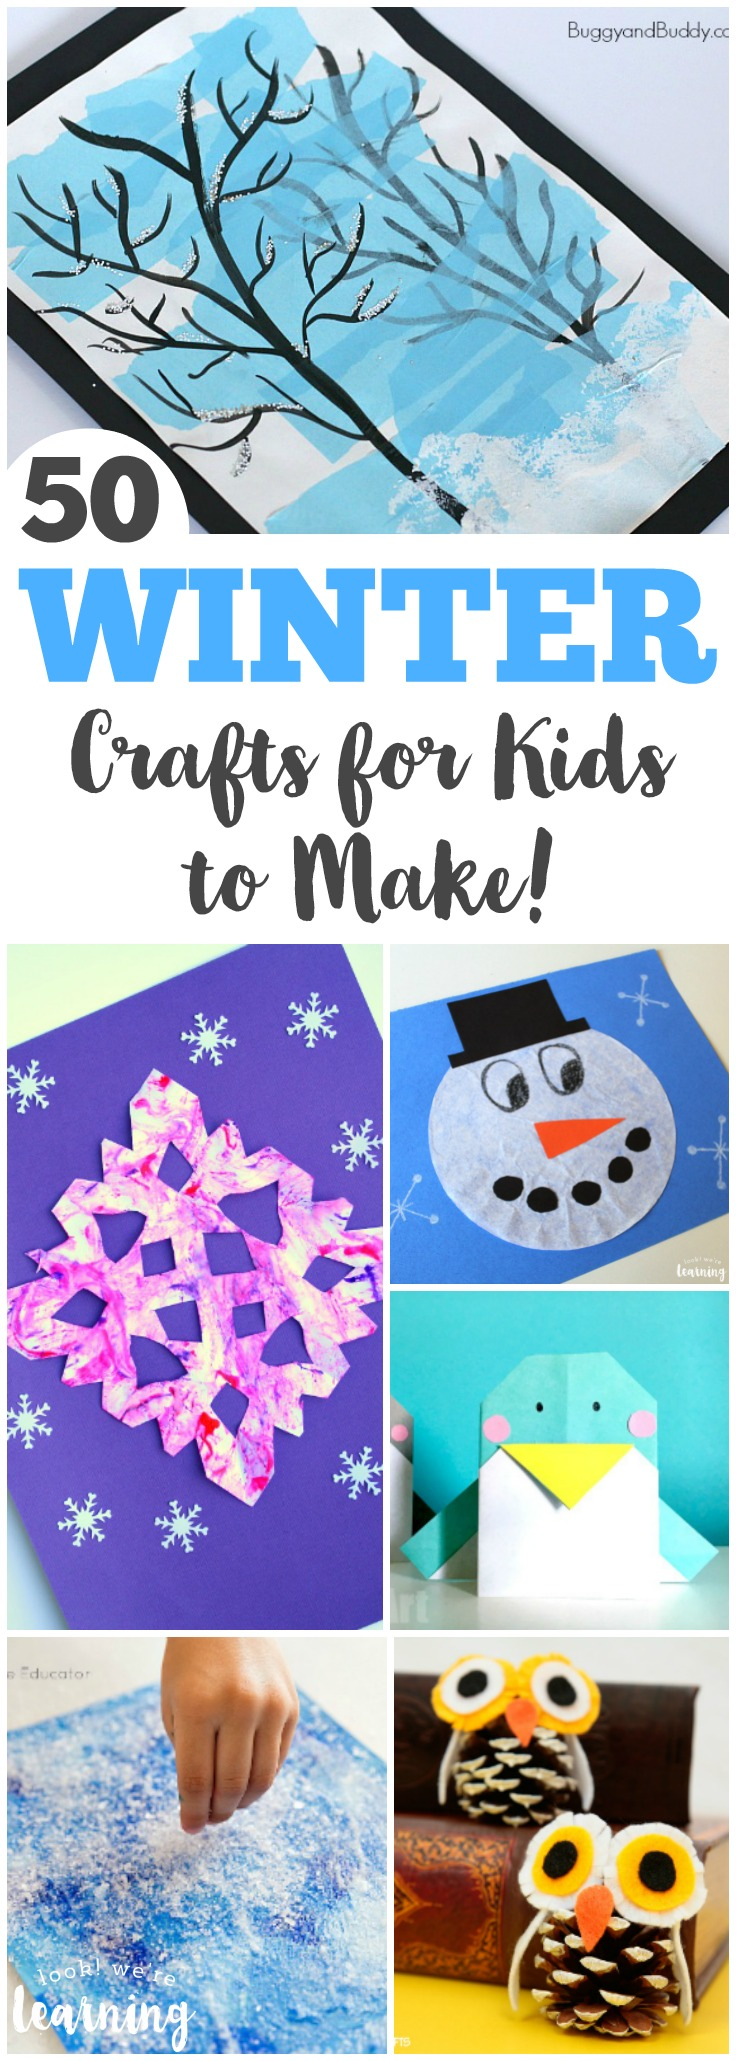 Easy Winter Kids Crafts That Anyone Can Make: 50 Fun And Easy Winter Crafts For Kids